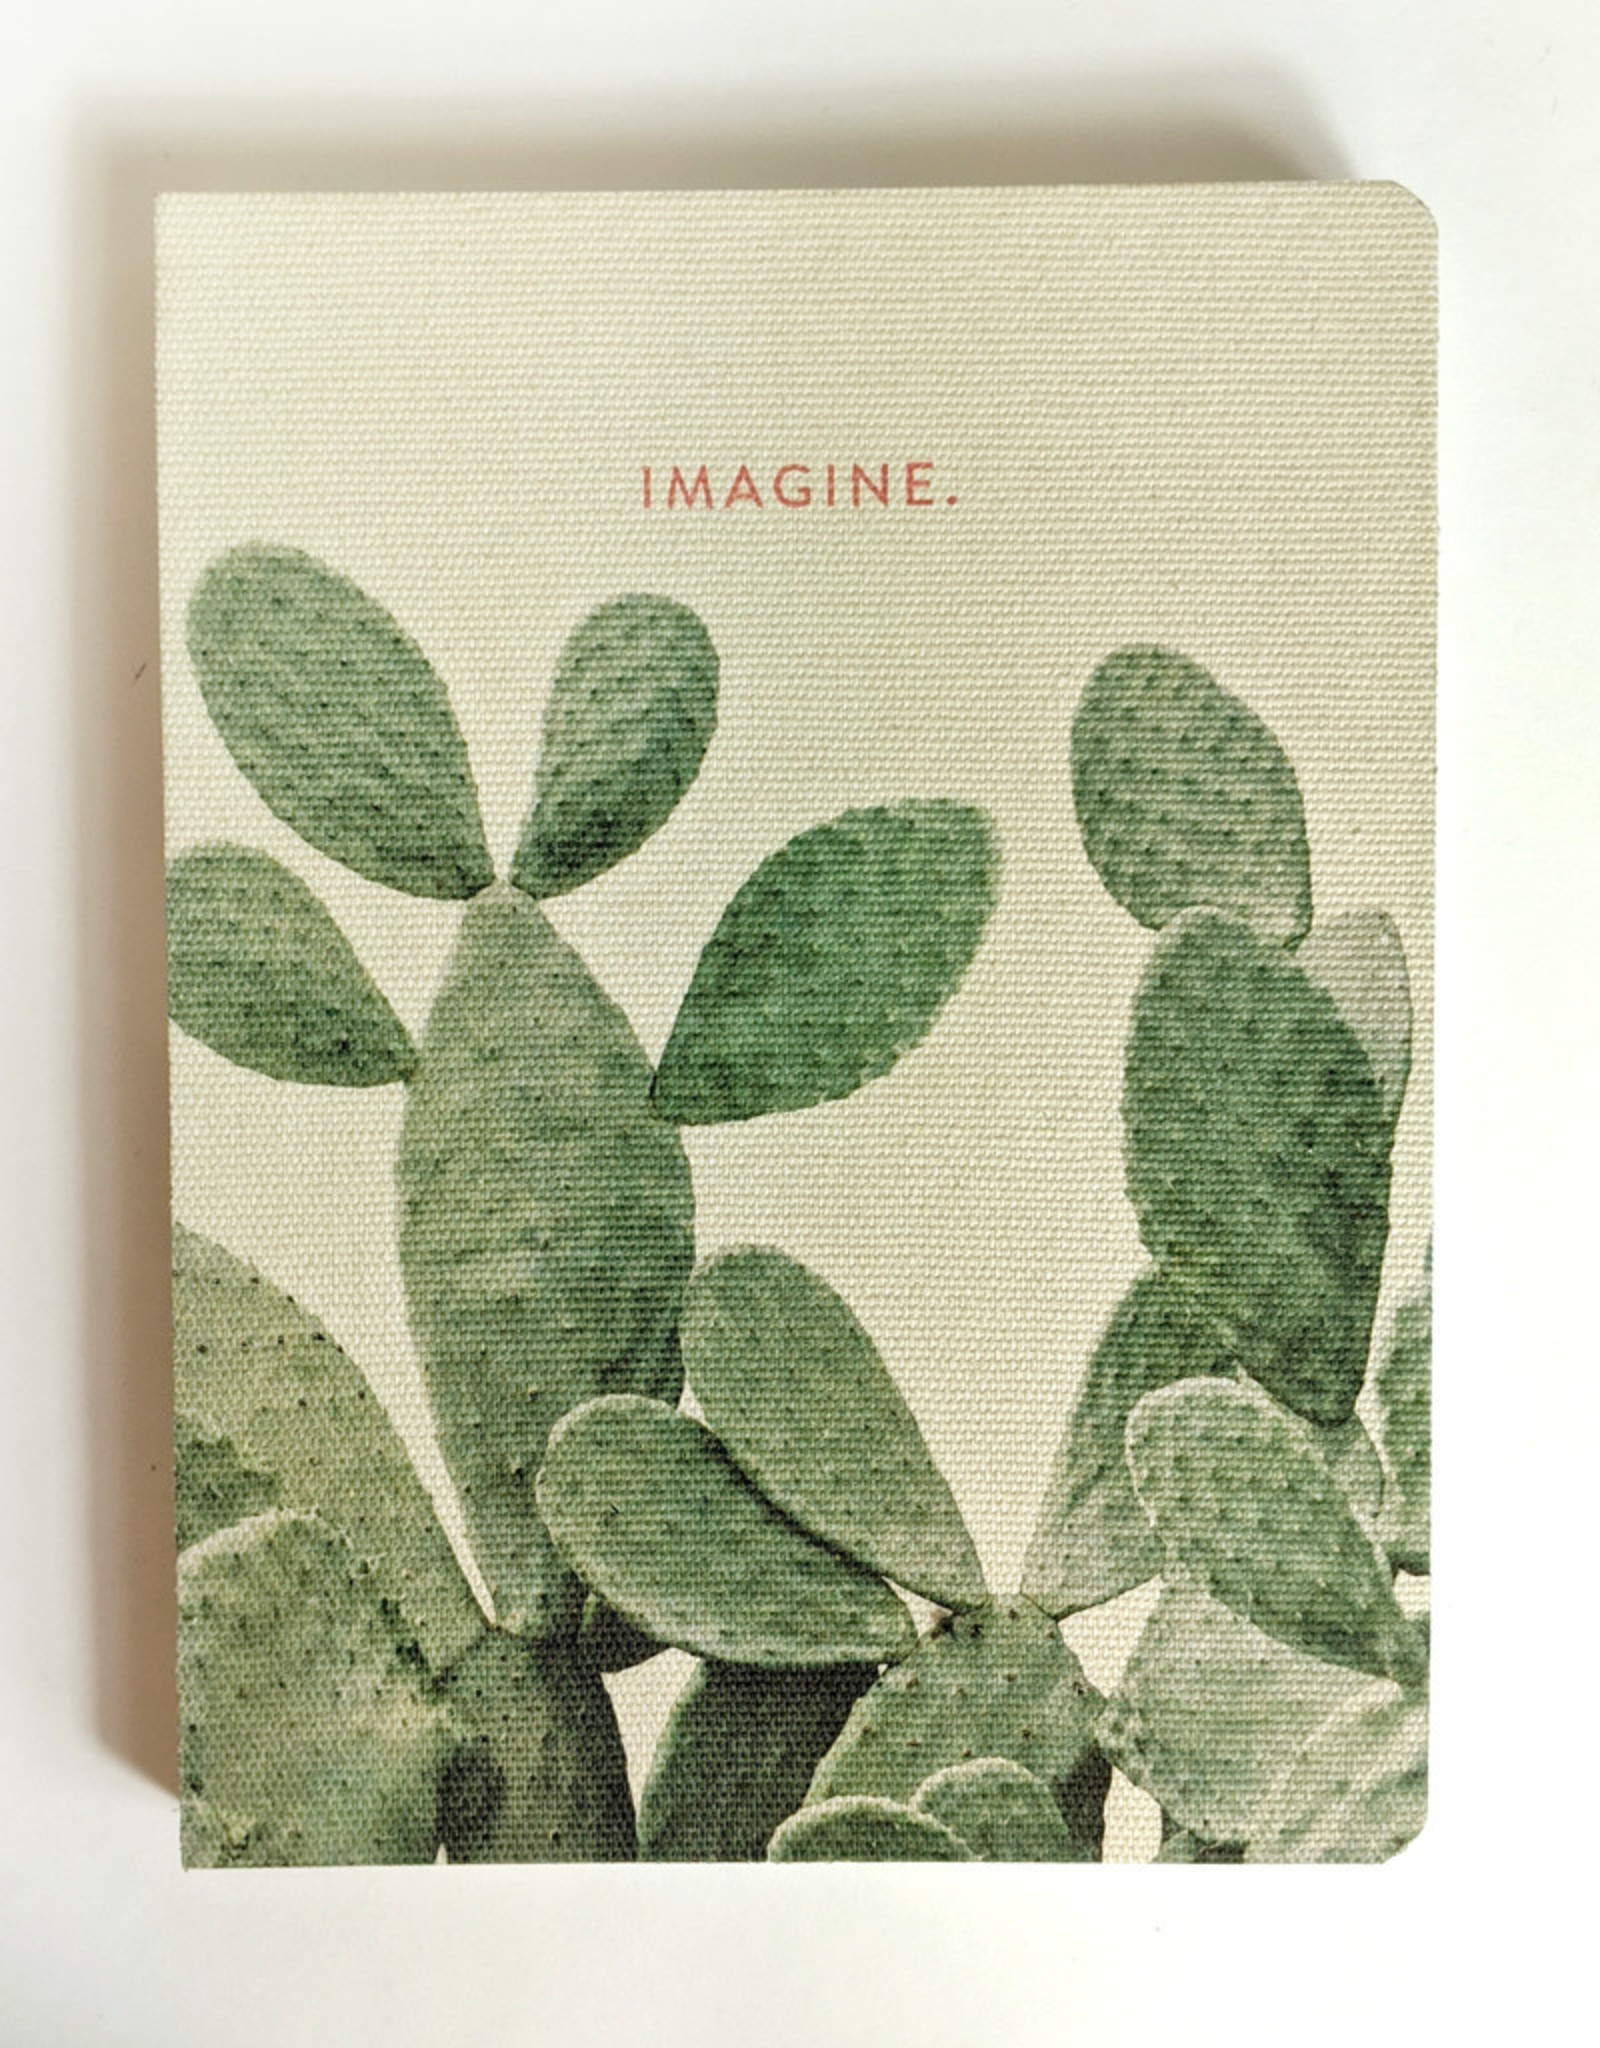 Studio Oh! Imagine Deconstructed Journal